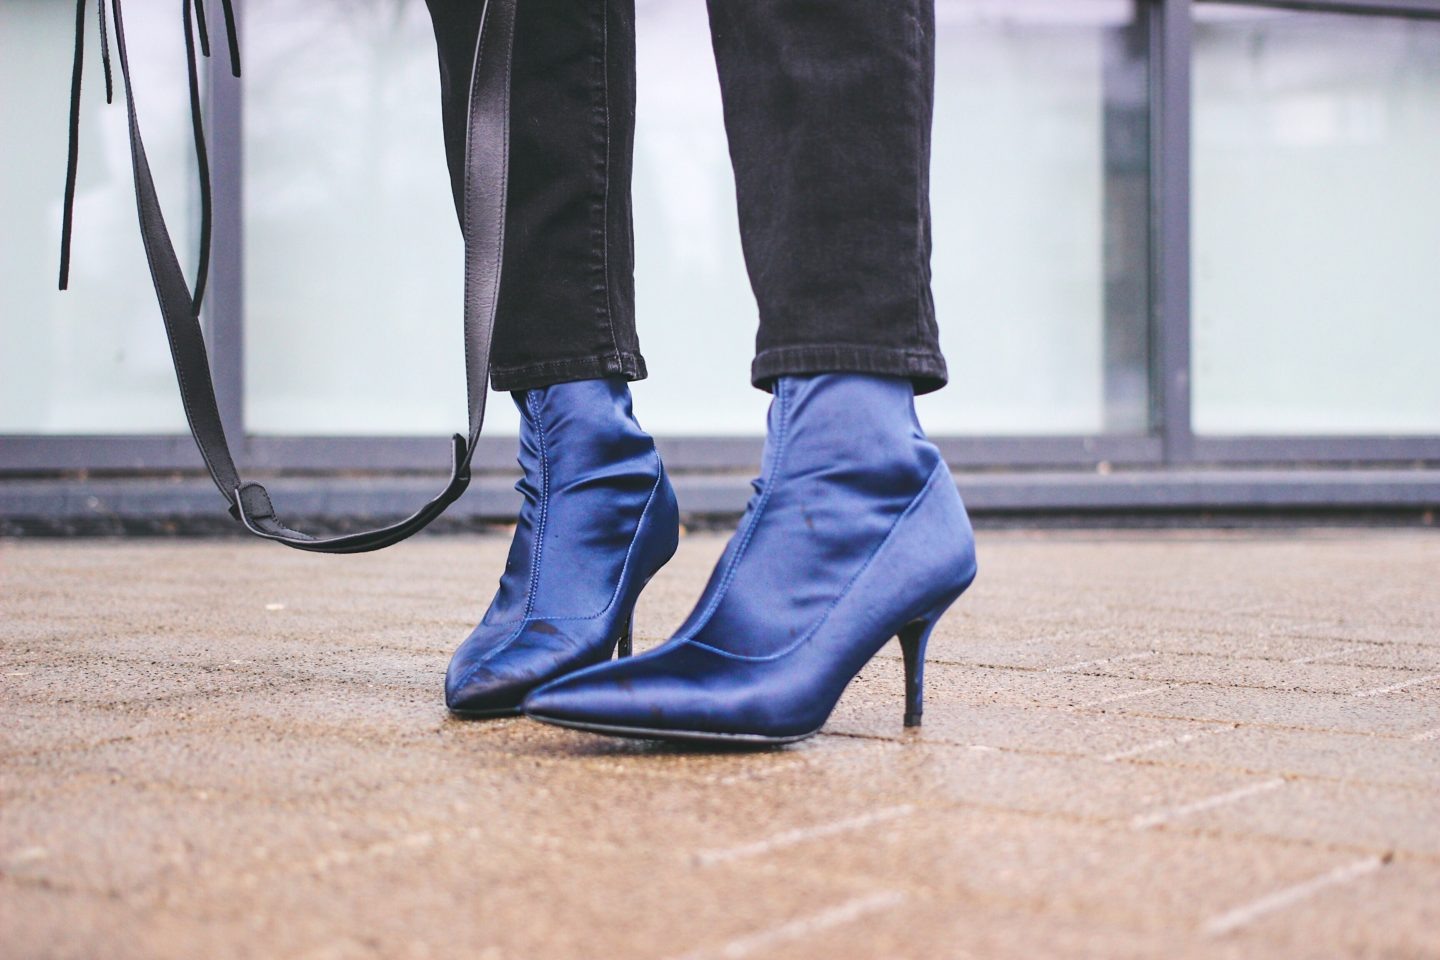 Navy satin ankle boots with kitten heel and pointed toe from Ego Footwear